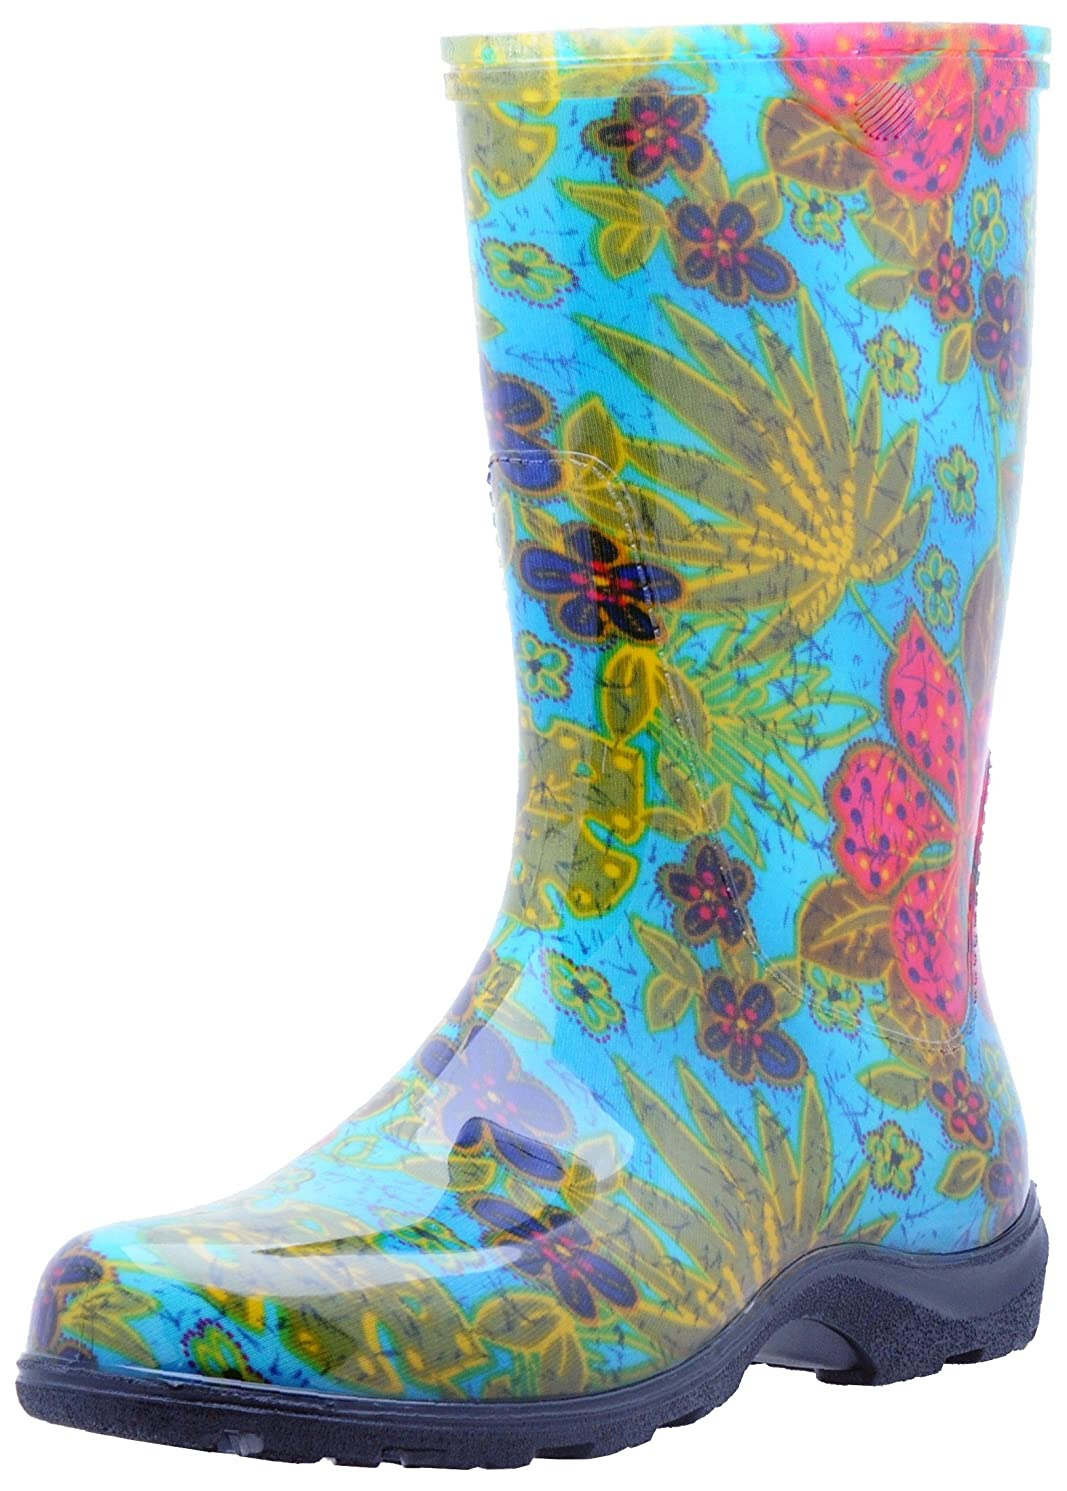 Sloggers  Women's Waterproof Rain and Garden Boot with Comfort Insole, Midsummer Blue, Size 6, Style 5002BL06